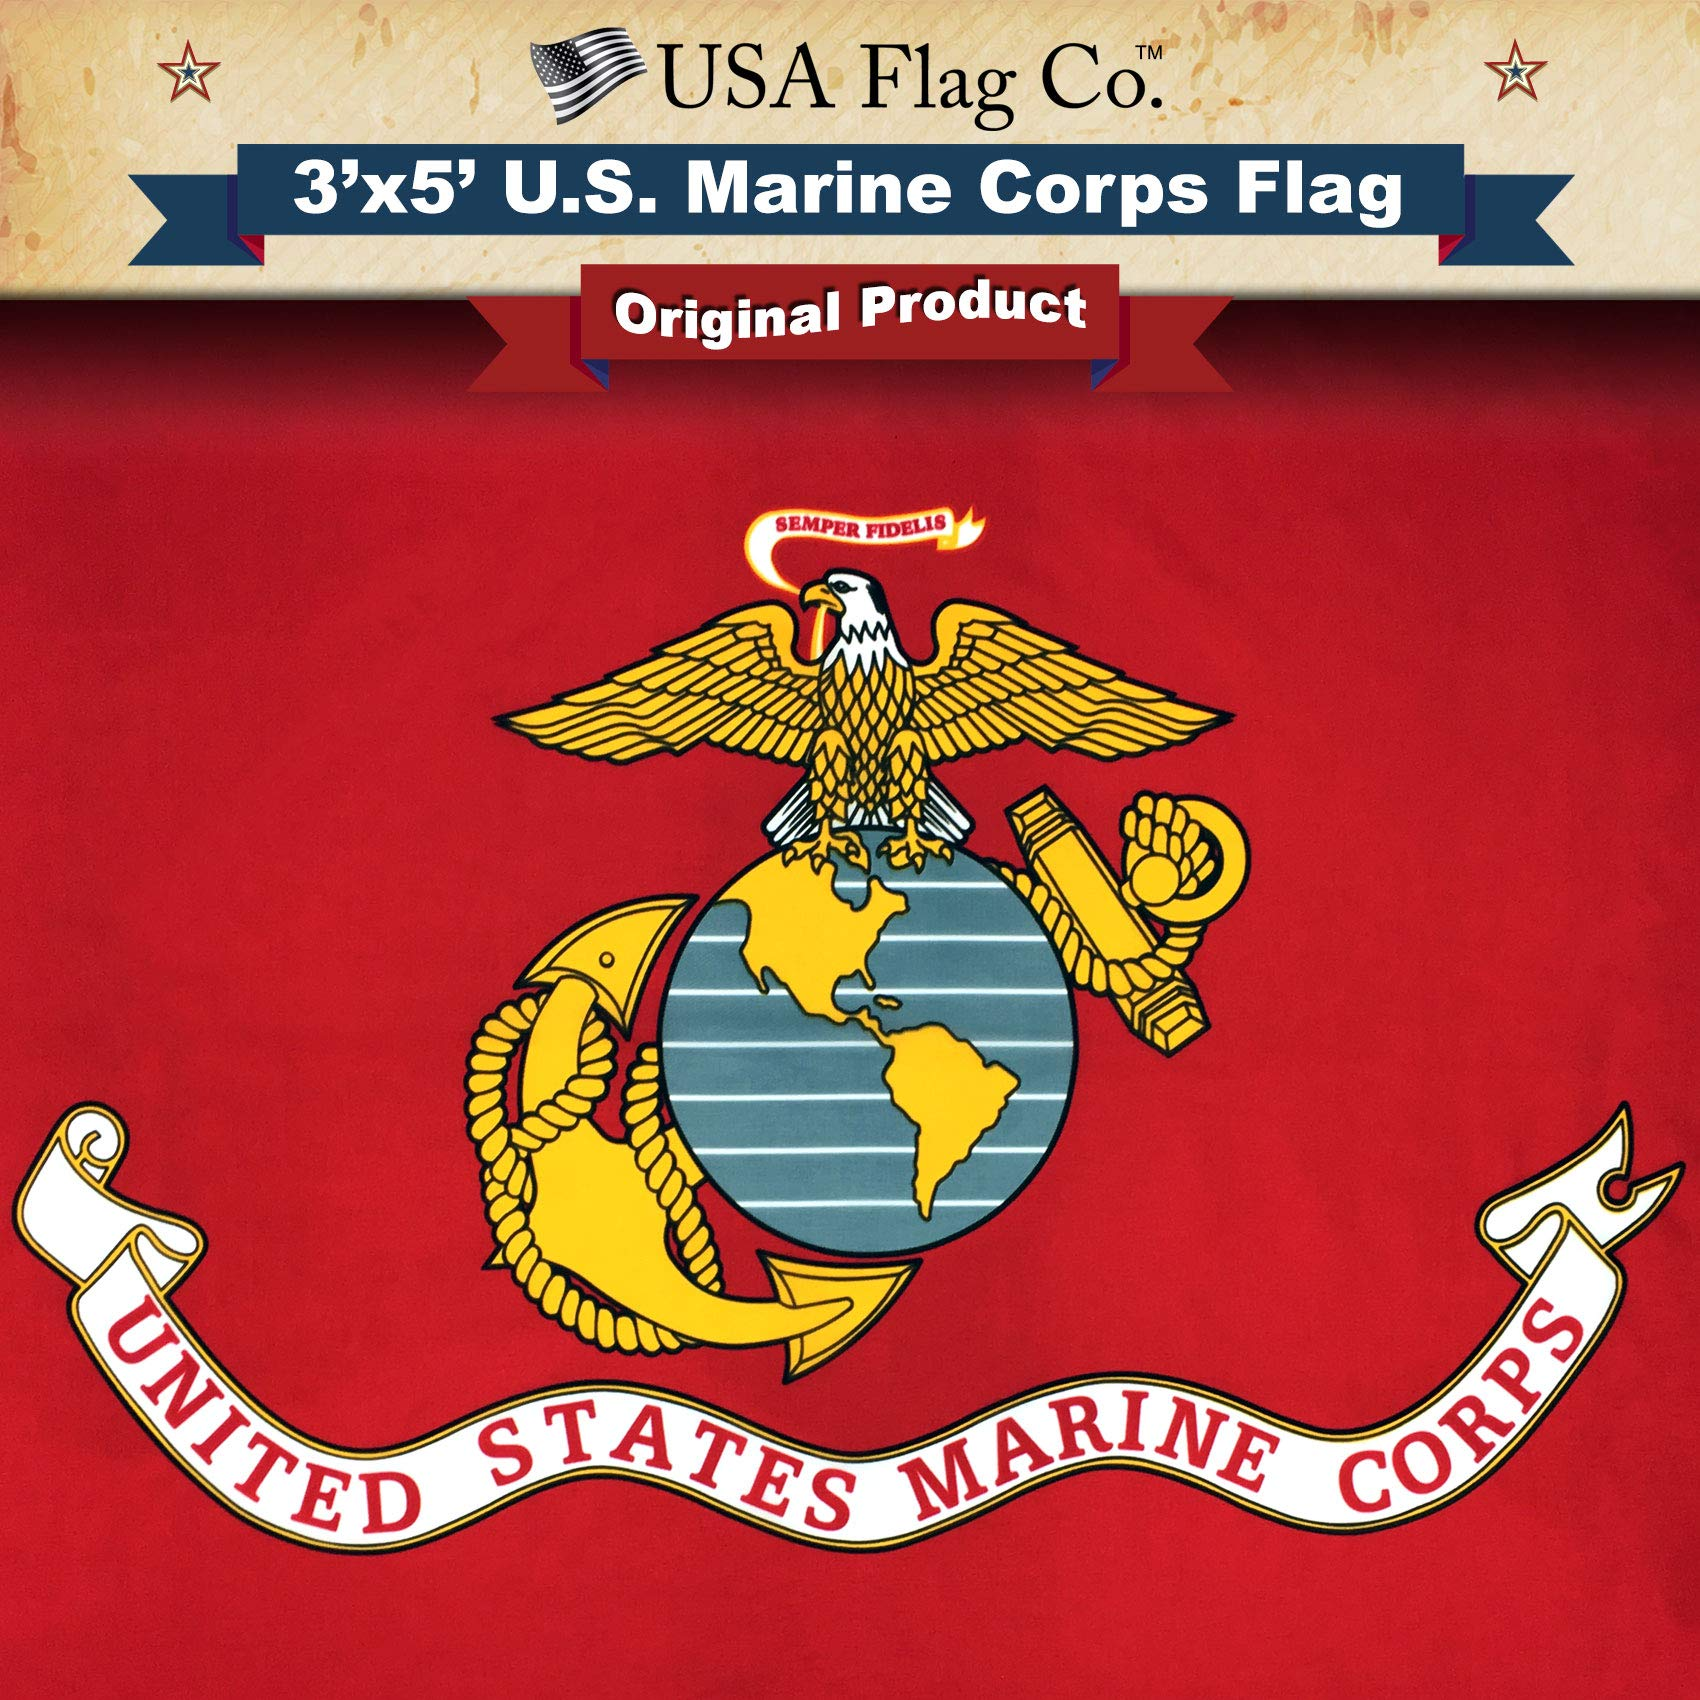 USA Flag Co. Marine Corps Flag is 100% American Made: The Best 3x5 Outdoor USMC Flag, Made in The USA for Prime Members and Amazon A to Z Guarantee. (3 by 5 Foot) by USA Flag Co.